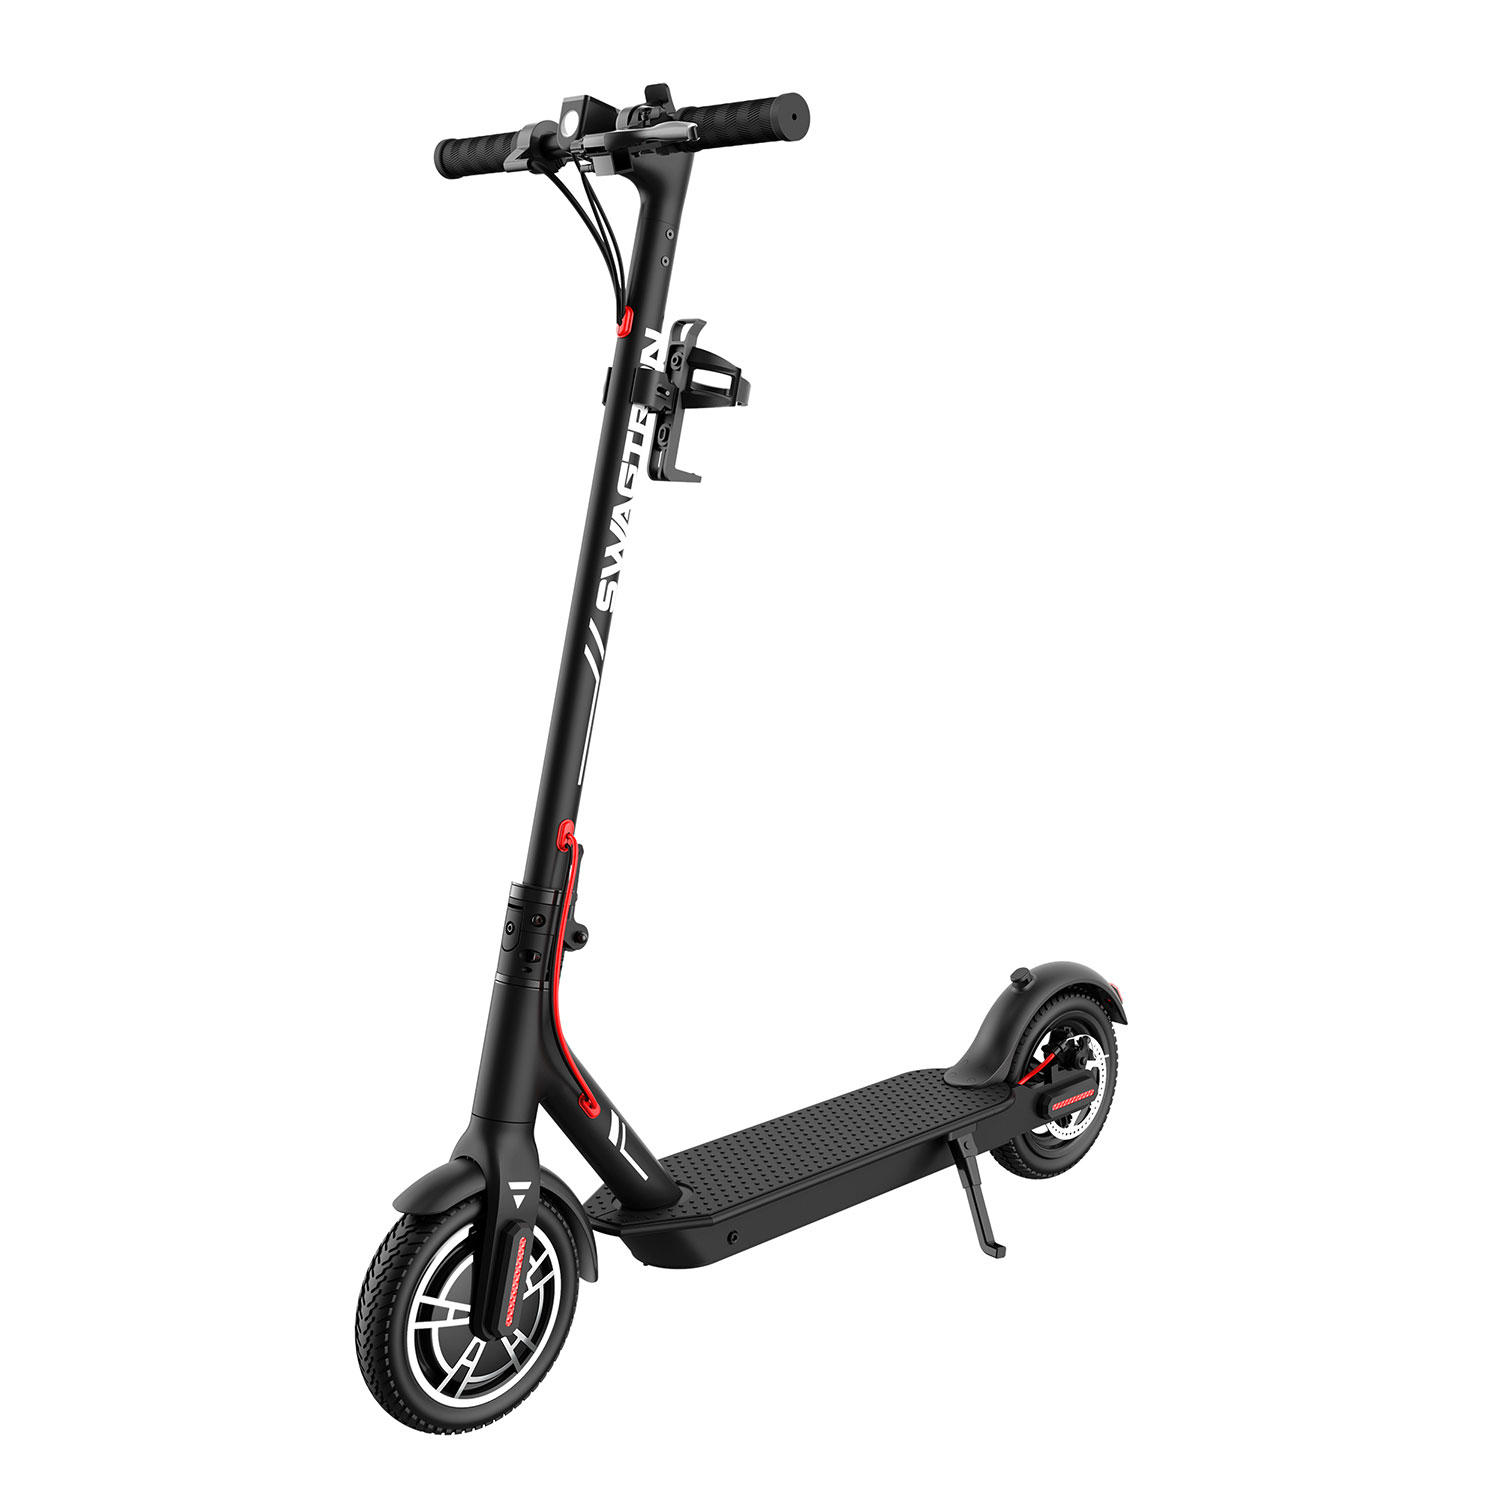 Swagtron App-Enabled Swagger 5 Boost Commuter Electric Scooter